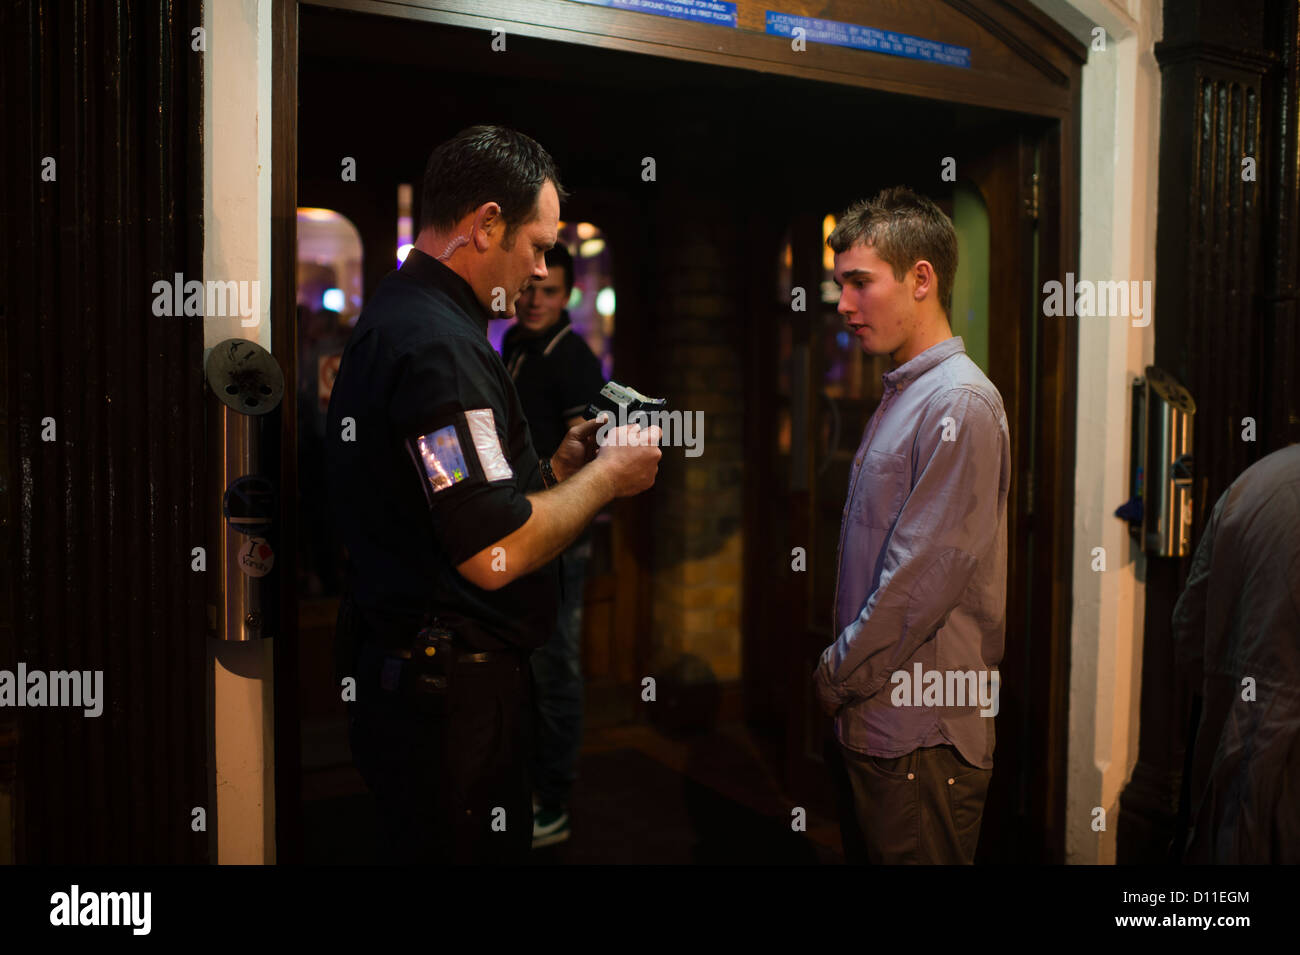 bouncer doorman stock photos bouncer doorman stock images alamy